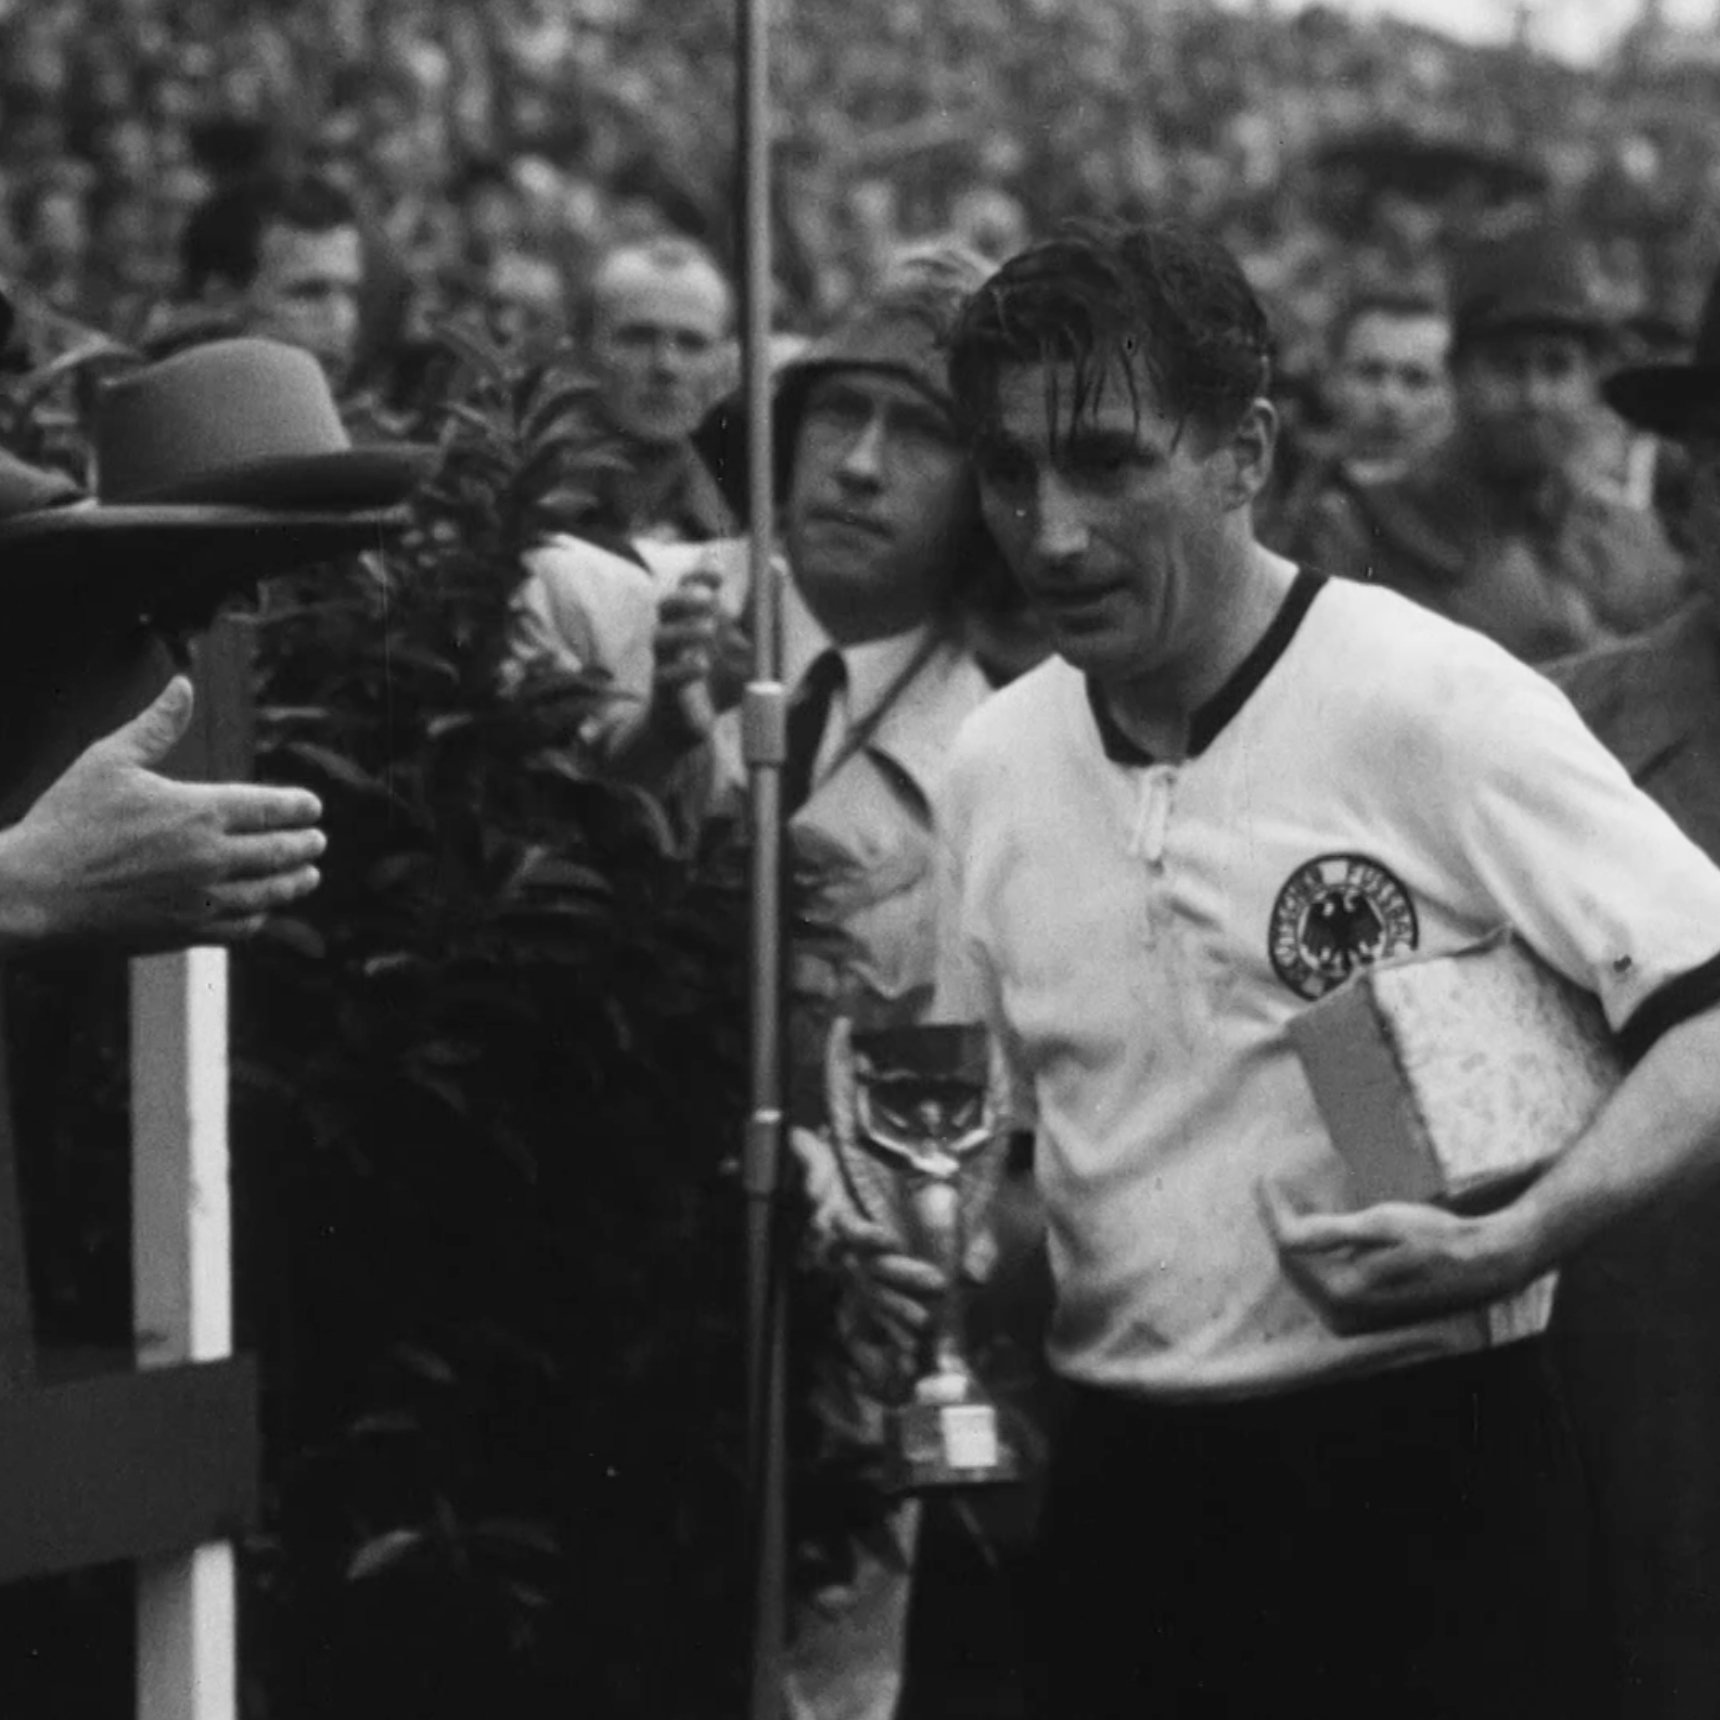 FIFA World Cup Story Archive